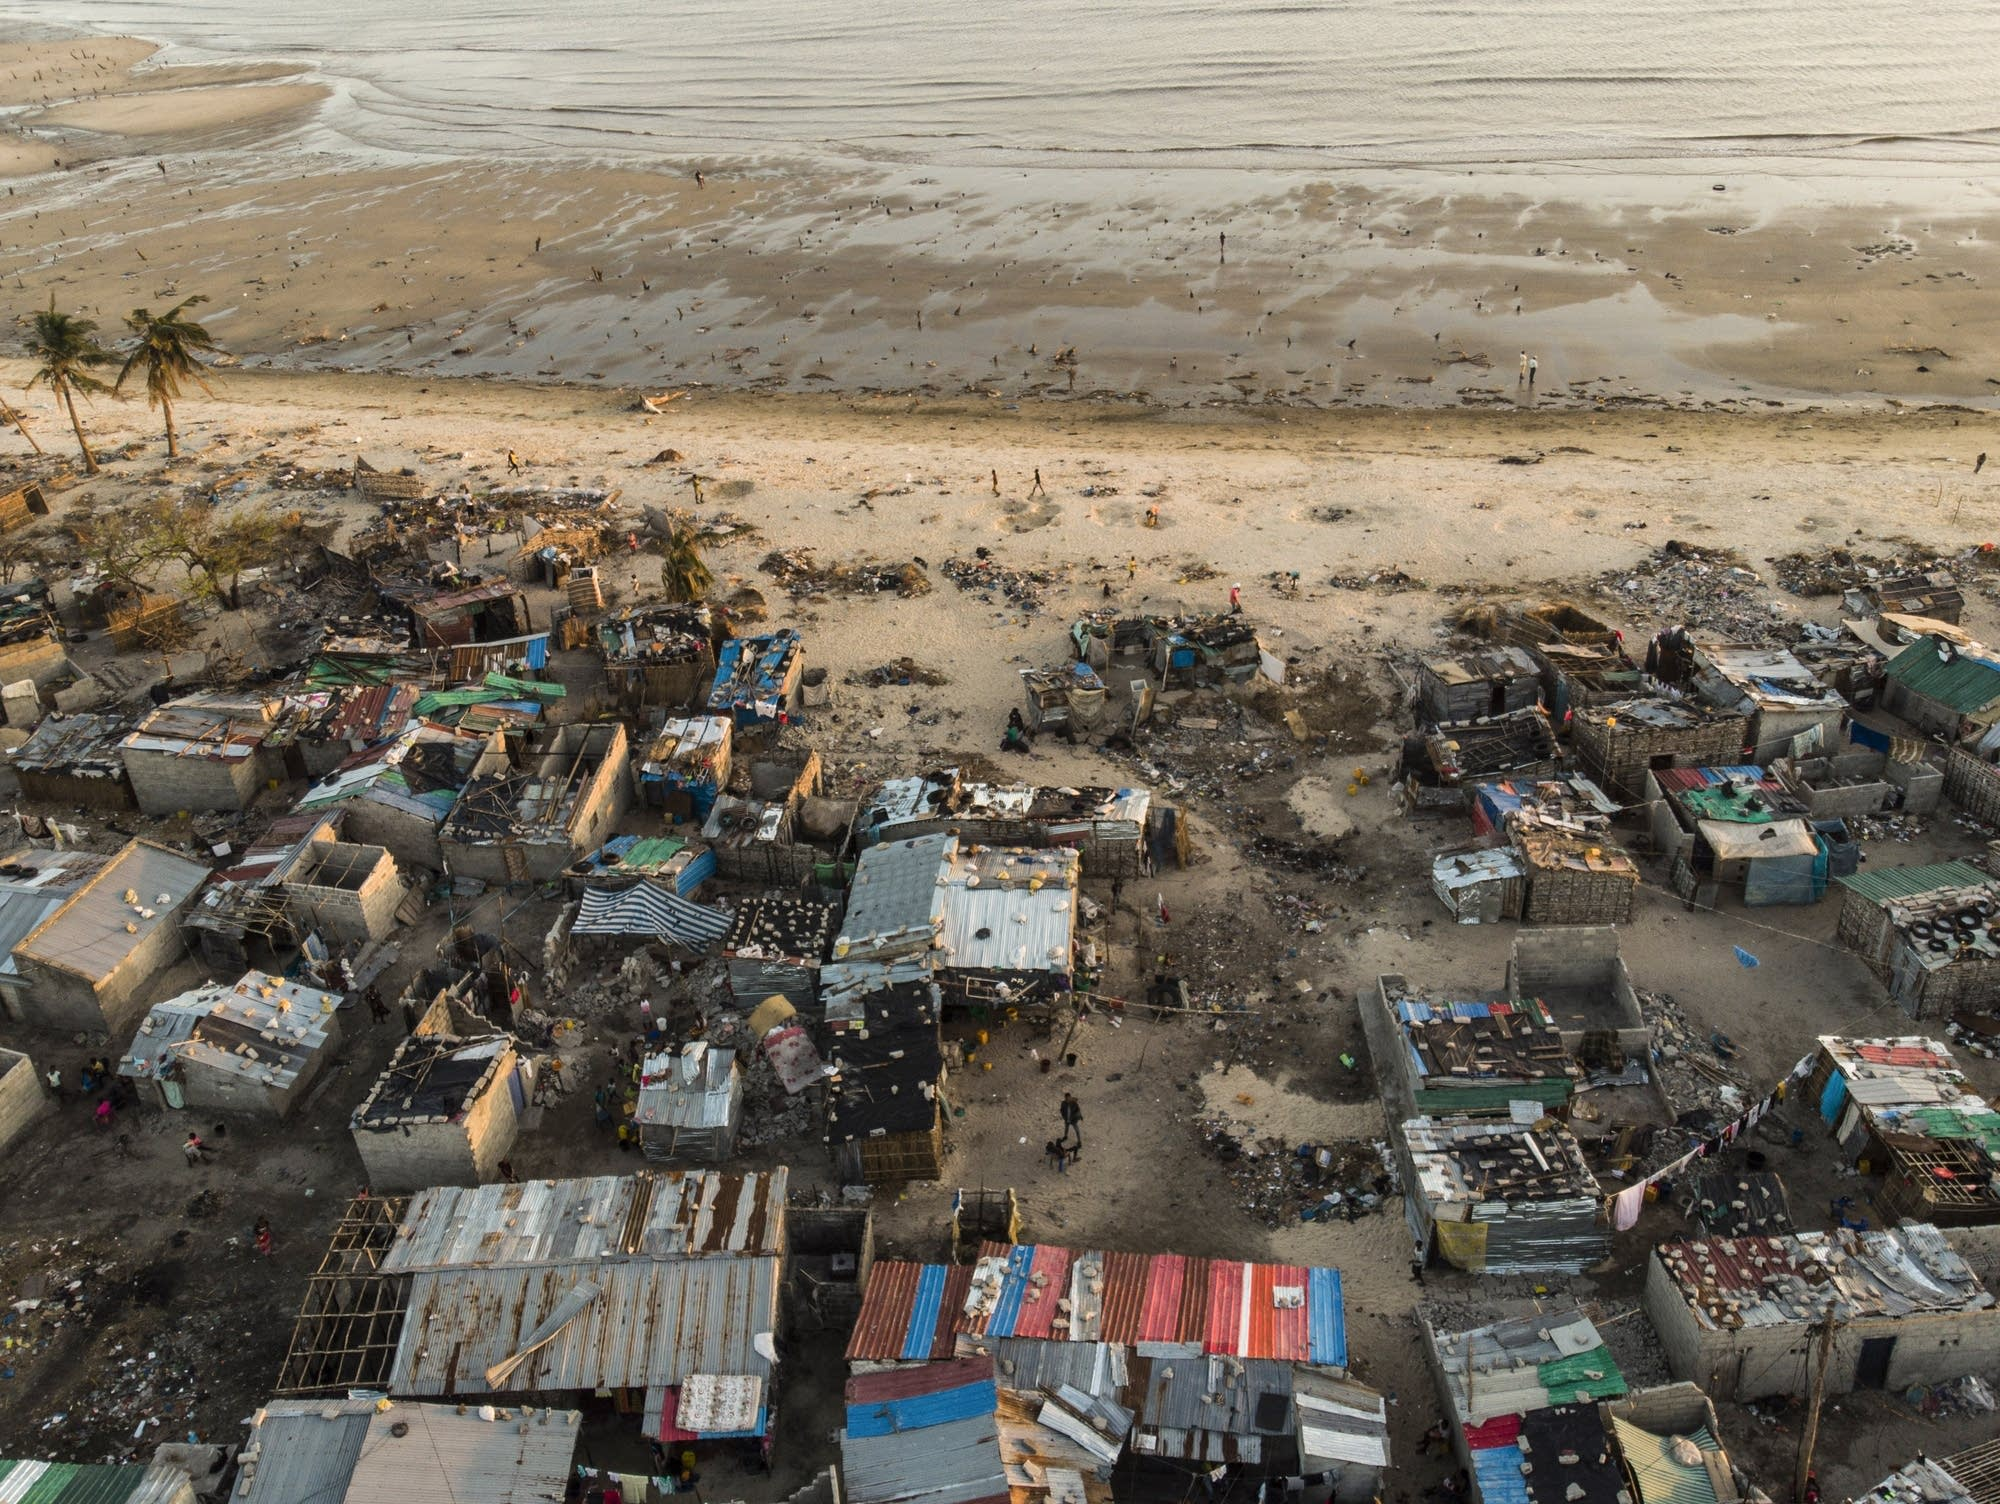 Debris and buildings destroyed by Cyclone Idai